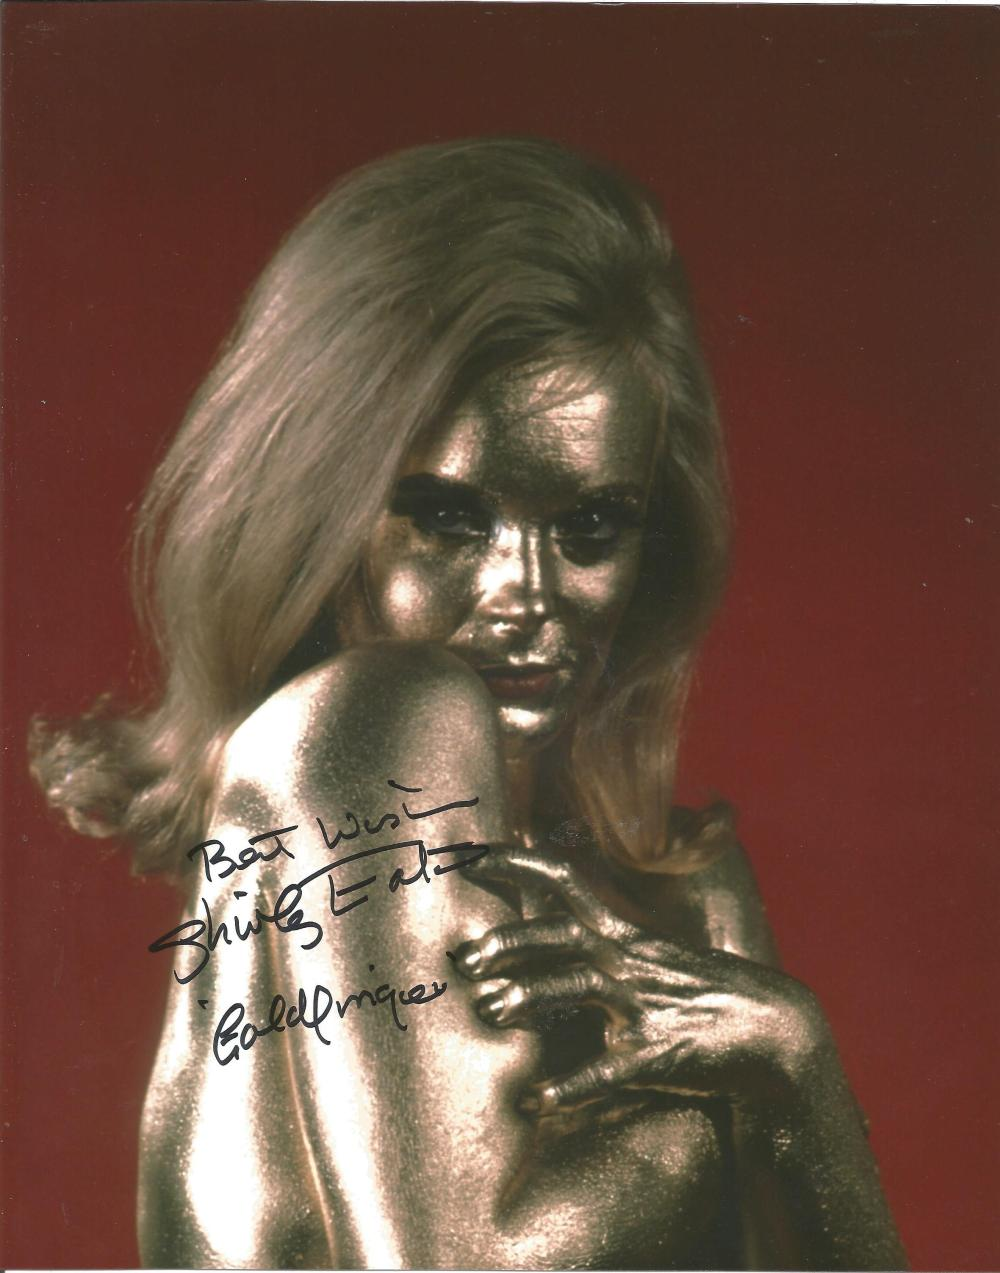 Shirley Eaton 007 Goldfinger hand signed 10x8 photo. This beautiful hand-signed photo depicts